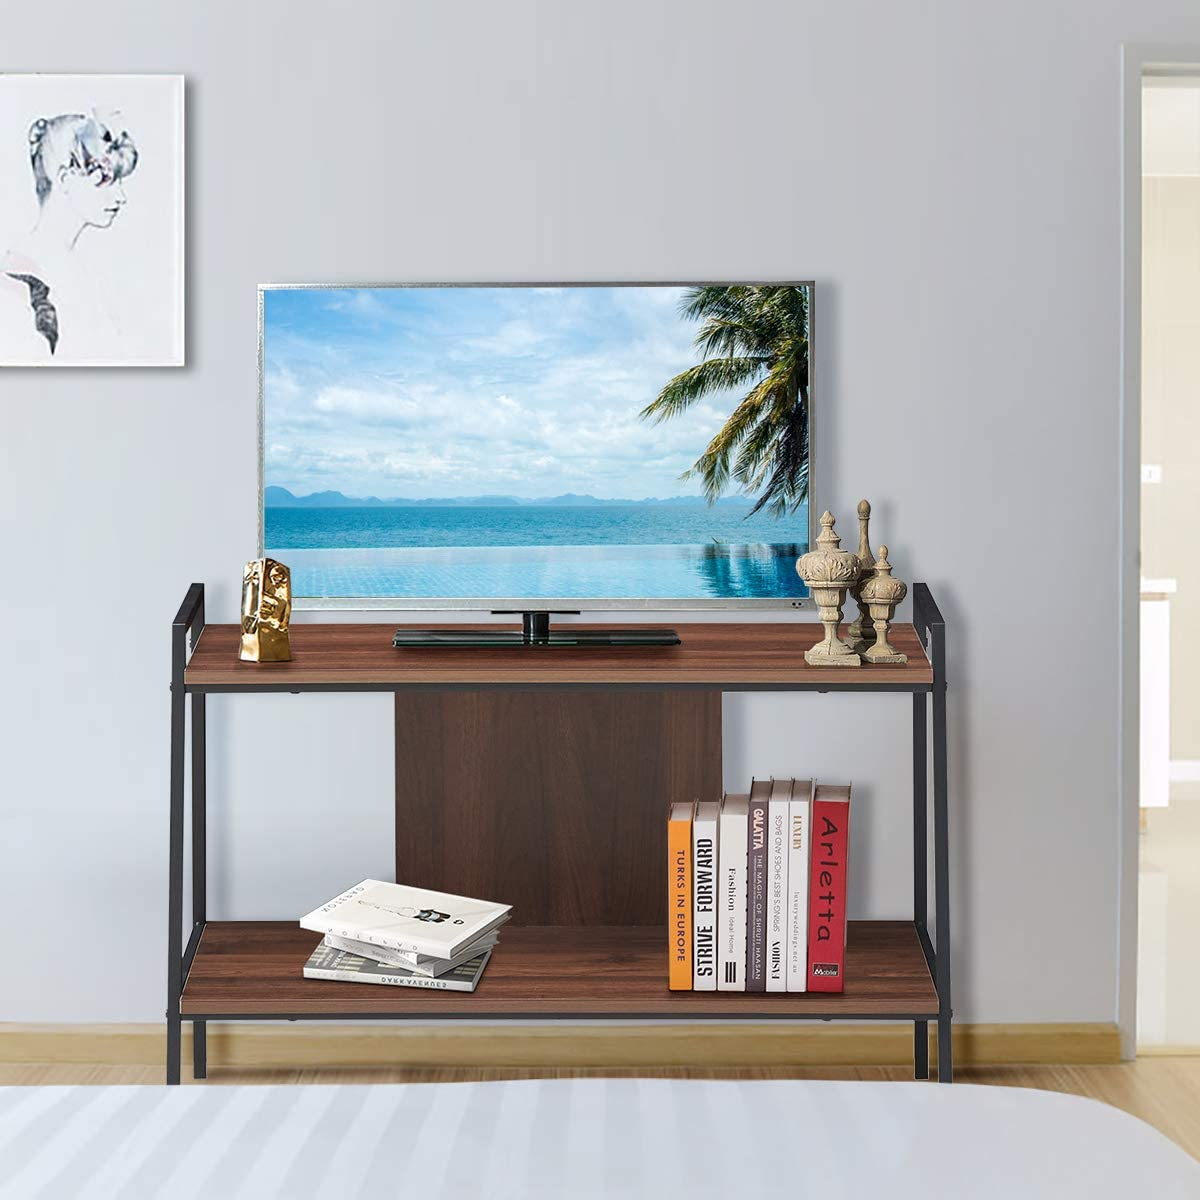 Tangkula 32 Inch TV Stand, Simple Industrial Style, 2-Tier Farmhouse Wooden Media Table, Media Console with 2 Storage Shelves for Home Living Room Office, Multifunctional TV Stand Shelf Walnut